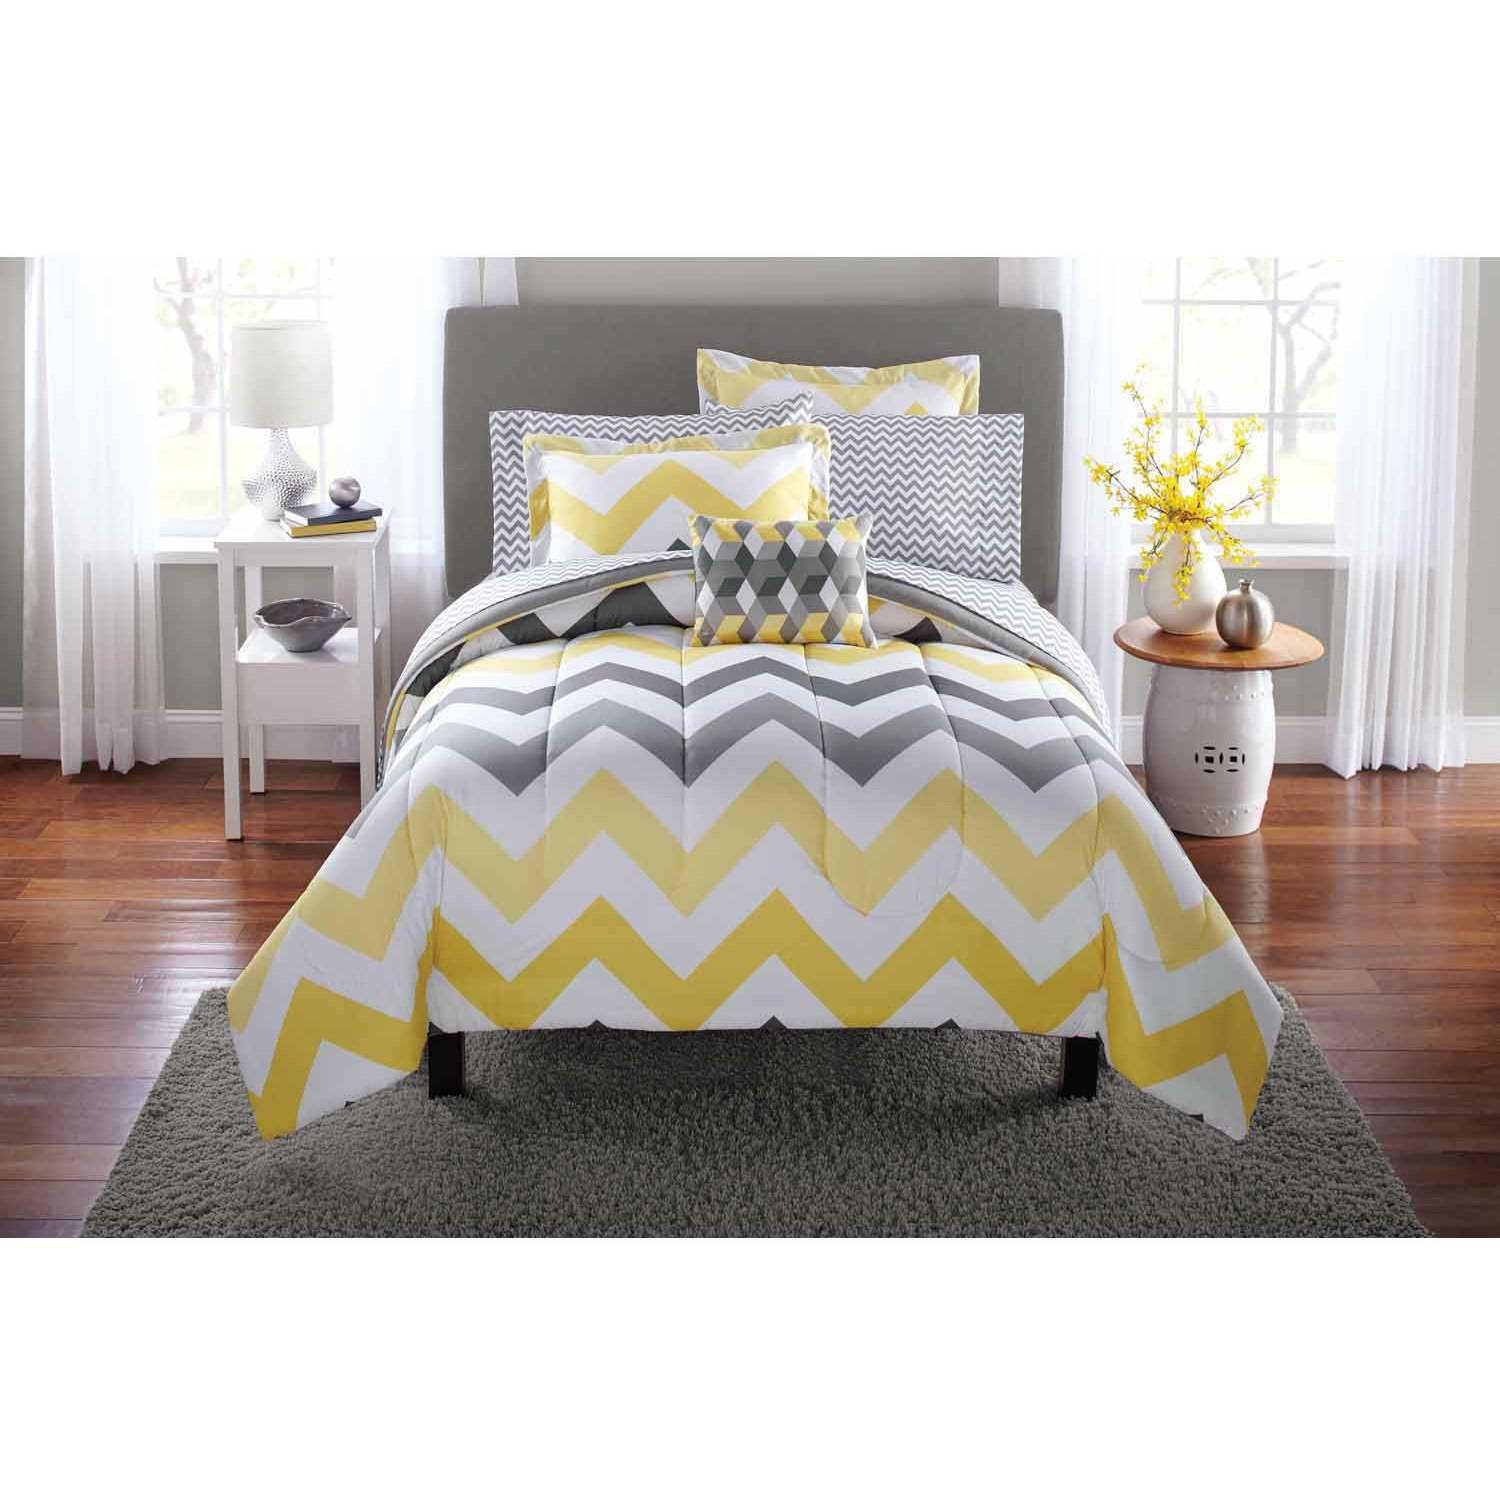 Mainstays Yellow Grey Chevron Bed In A Bag 6 Piece Bedding Comforter Set Twin Walmart Com Walmart Com